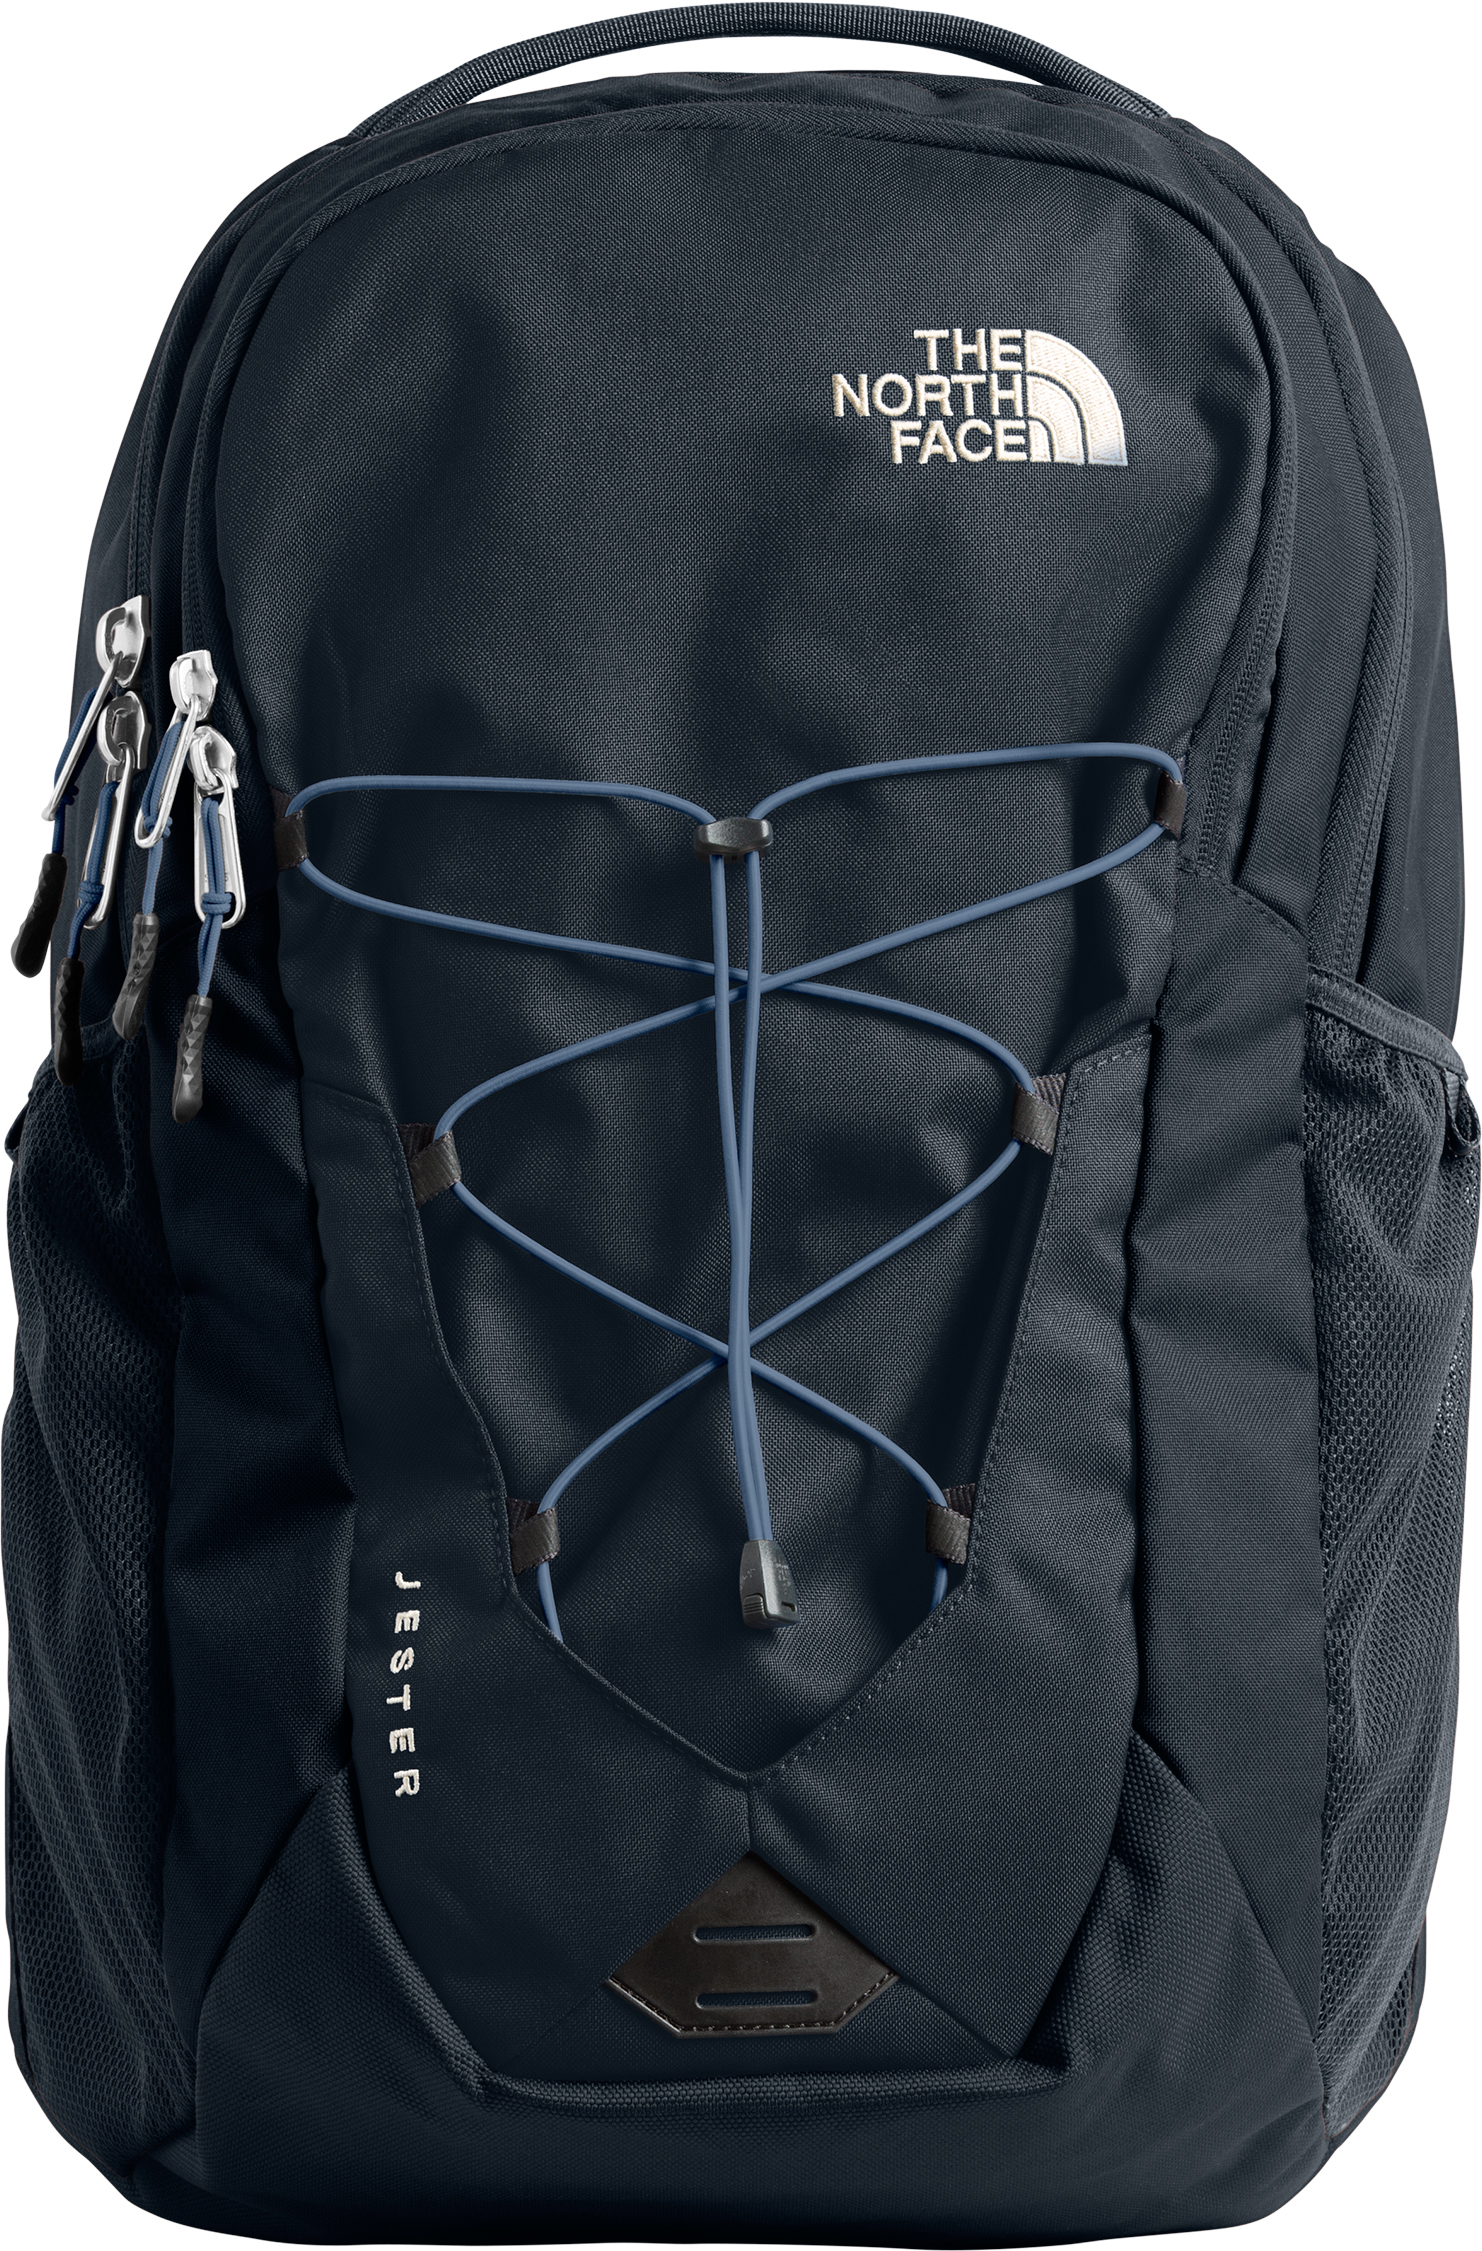 ff1502419 The North Face Packs and bags | MEC